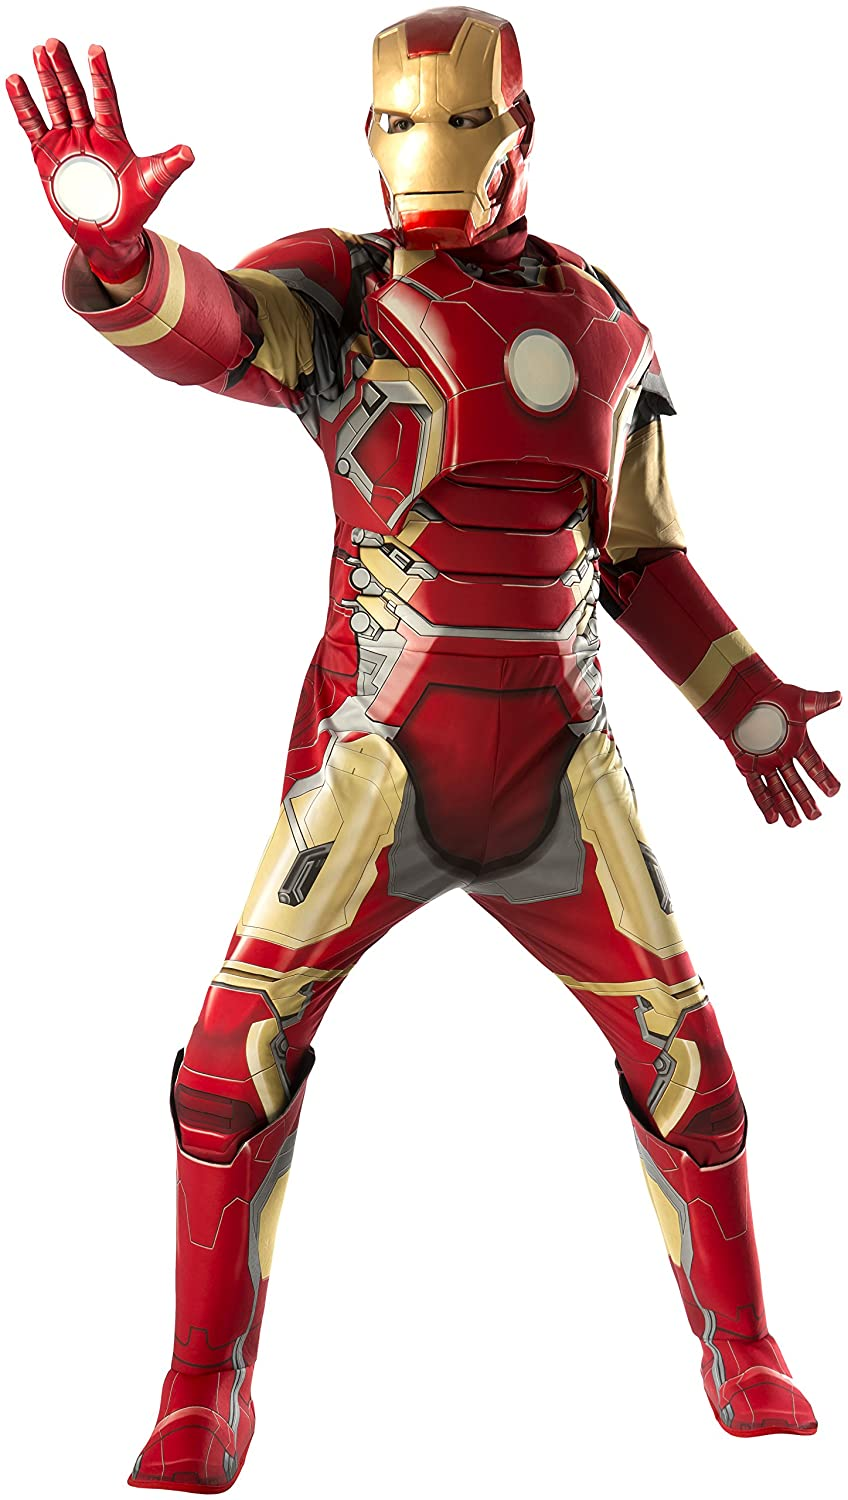 pictures of iron man costume. Black Bedroom Furniture Sets. Home Design Ideas